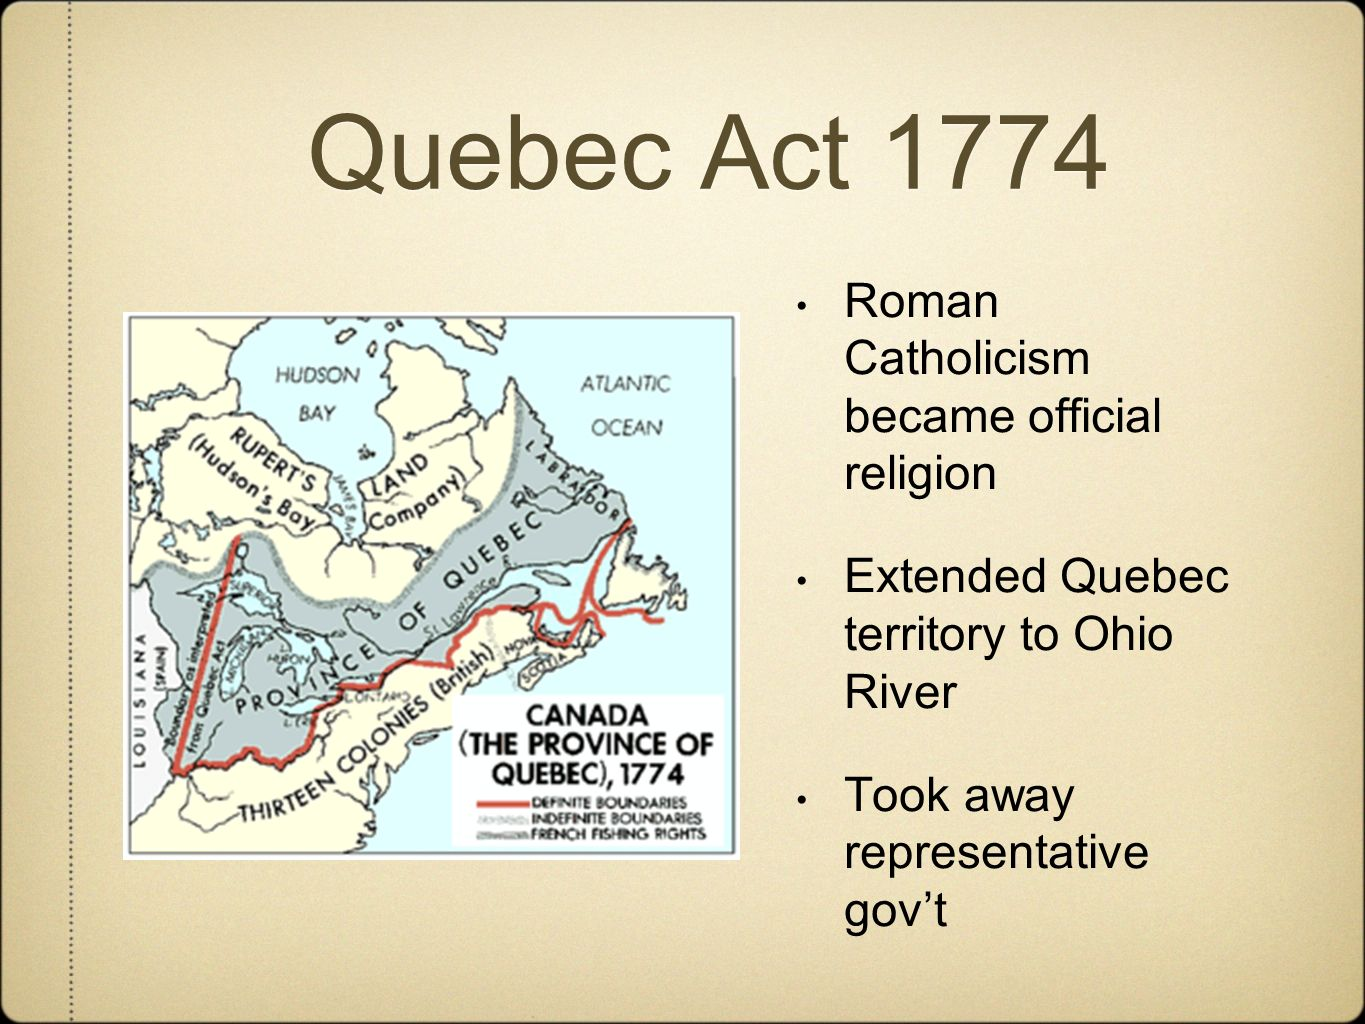 """an interpretation of a quebec act of 1774 The quebec act of 1774, also known as the british north america act of 1774, was a set of """"procedures of governance"""" that was given to quebec at the time it was passed on june 22nd 1774 basically, quebec was given special treatment."""